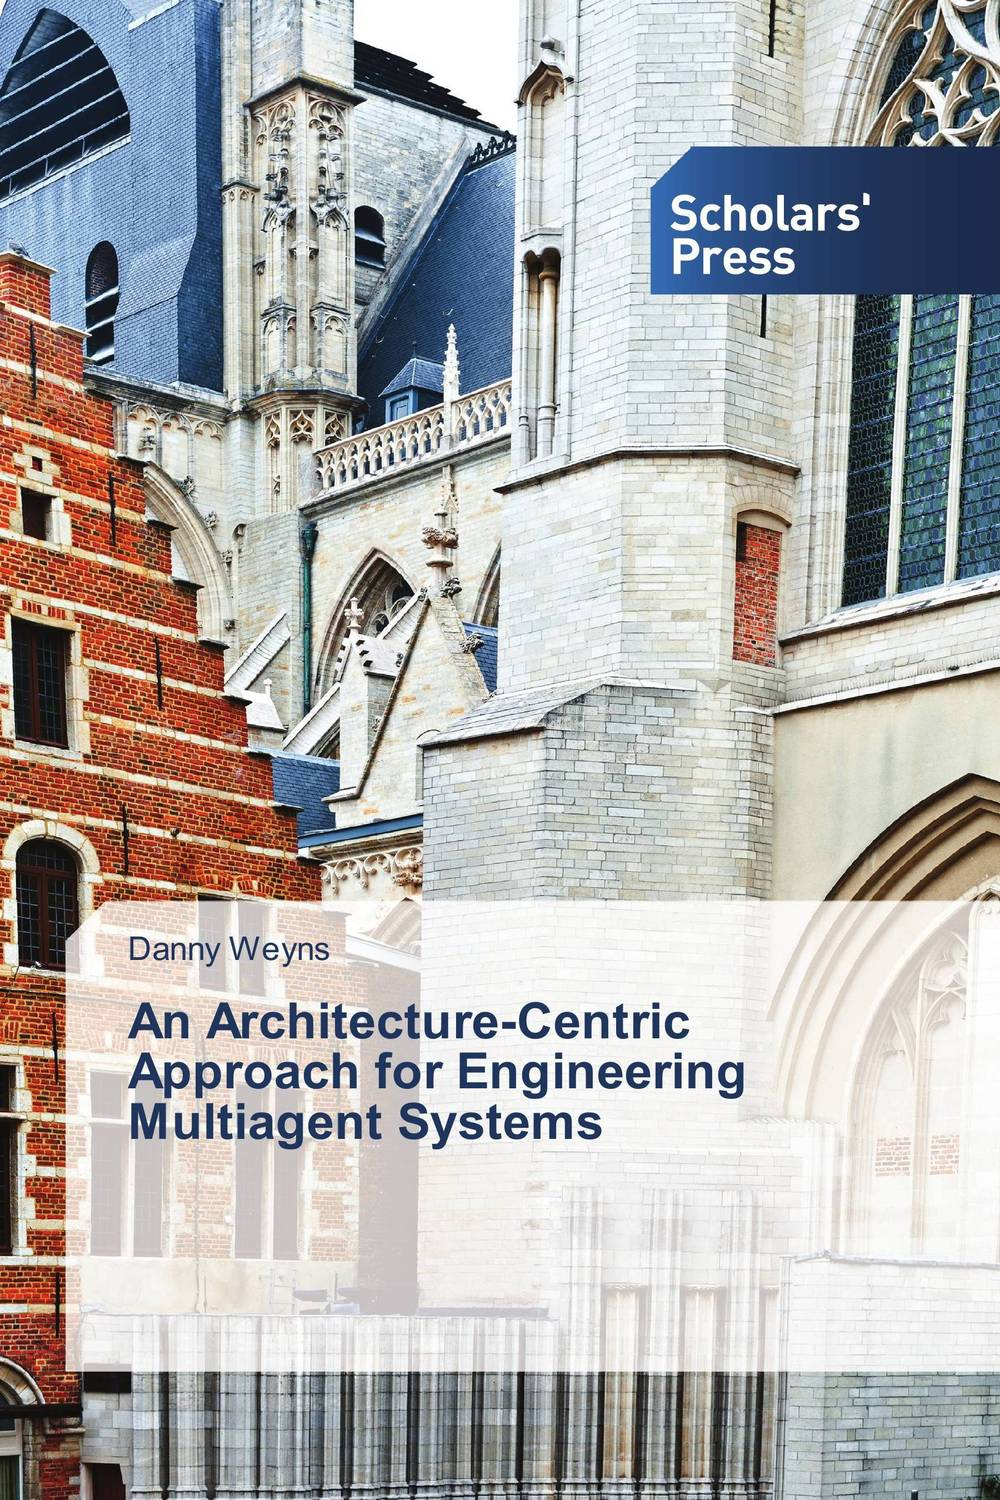 An Architecture-Centric Approach for Engineering Multiagent Systems software architecture and system requirements